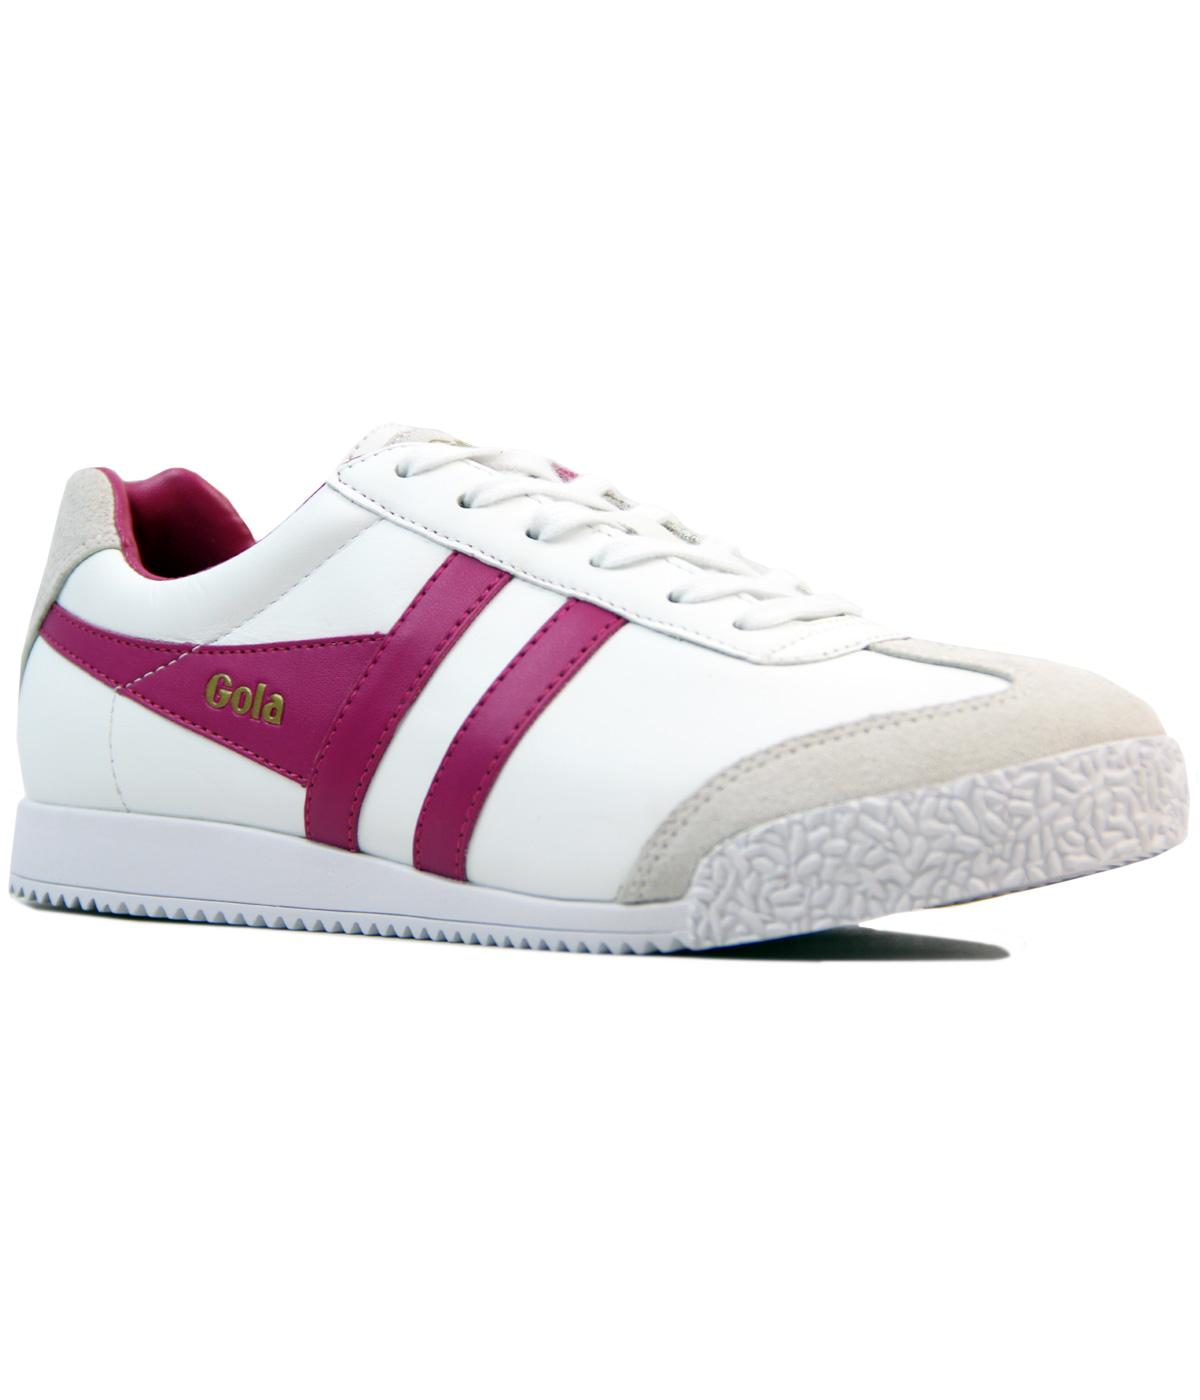 GOLA Harrier Womens Retro Leather Trainers WHITE